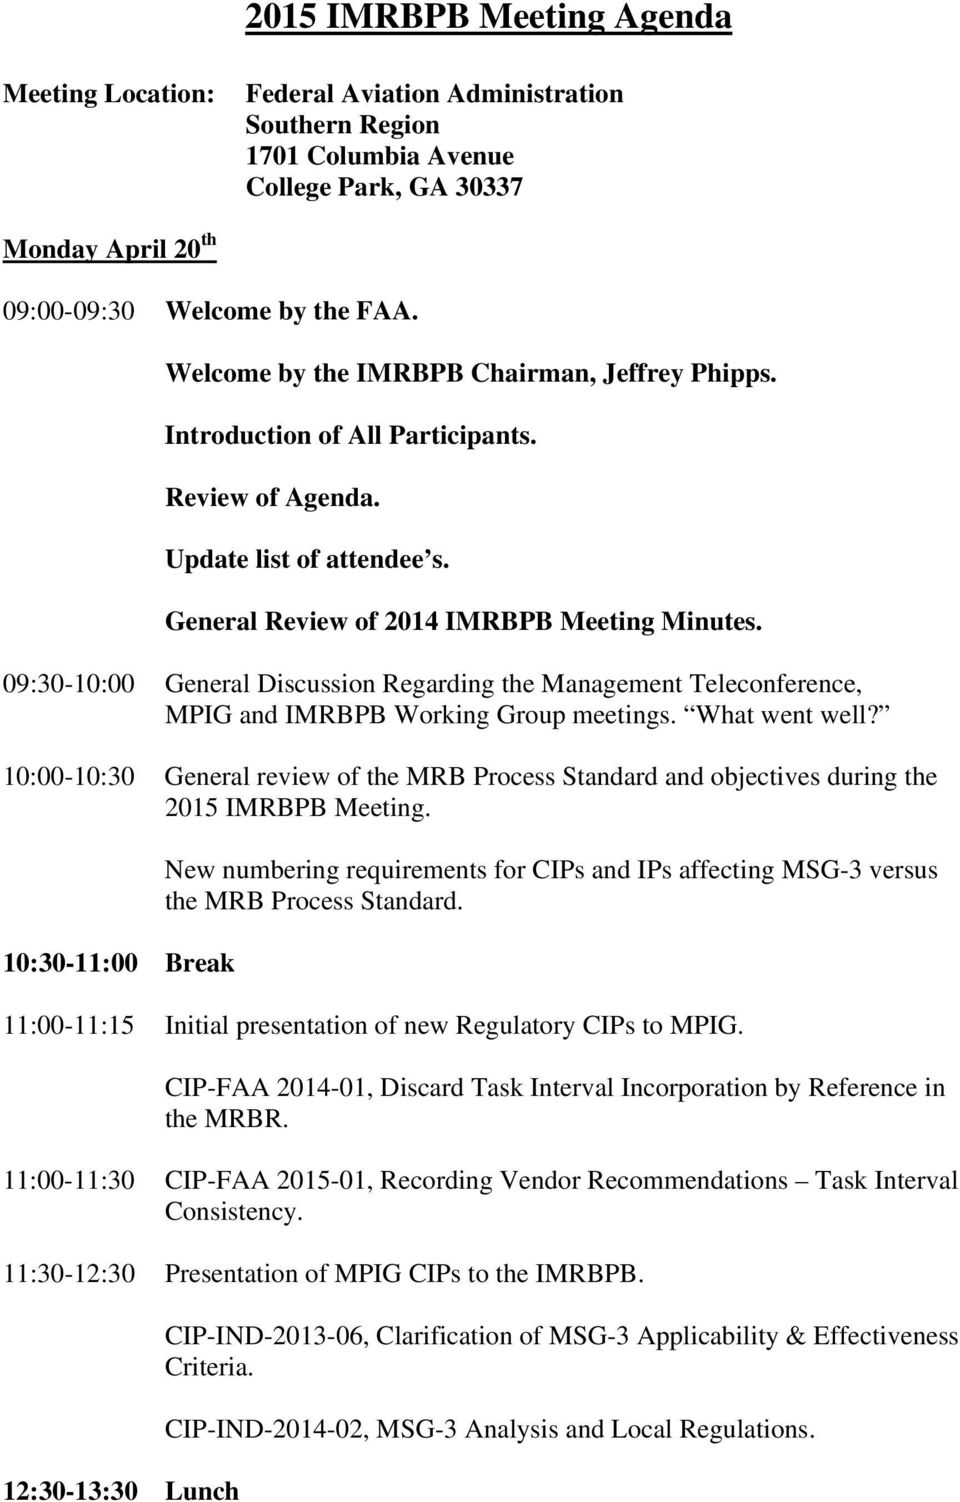 09:30-10:00 General Discussion Regarding the Management Teleconference, MPIG and IMRBPB Working Group meetings. What went well?